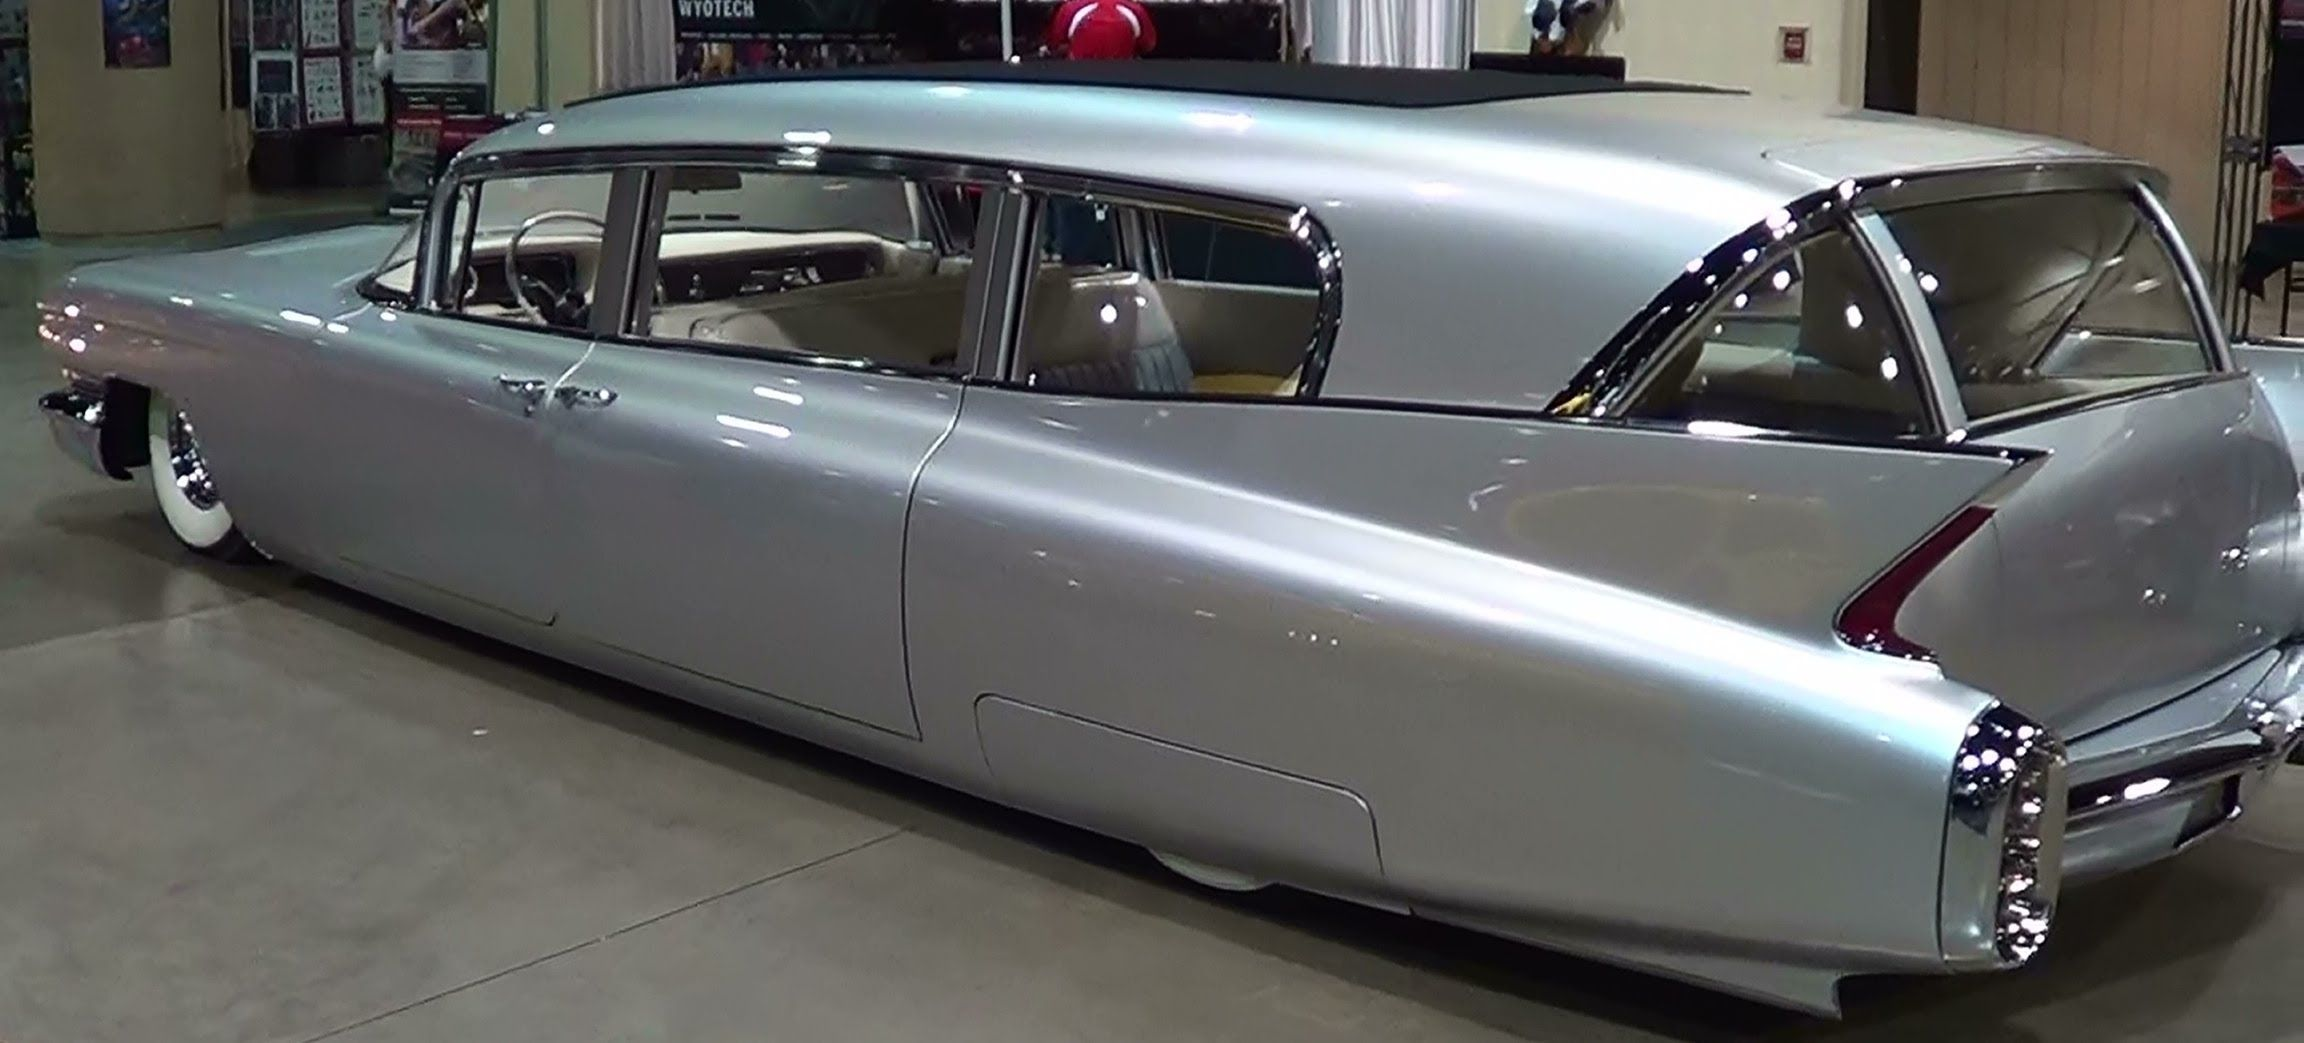 1960 Cadillac Hearse Thunder Taker 82 Mph In 2 2 Seconds